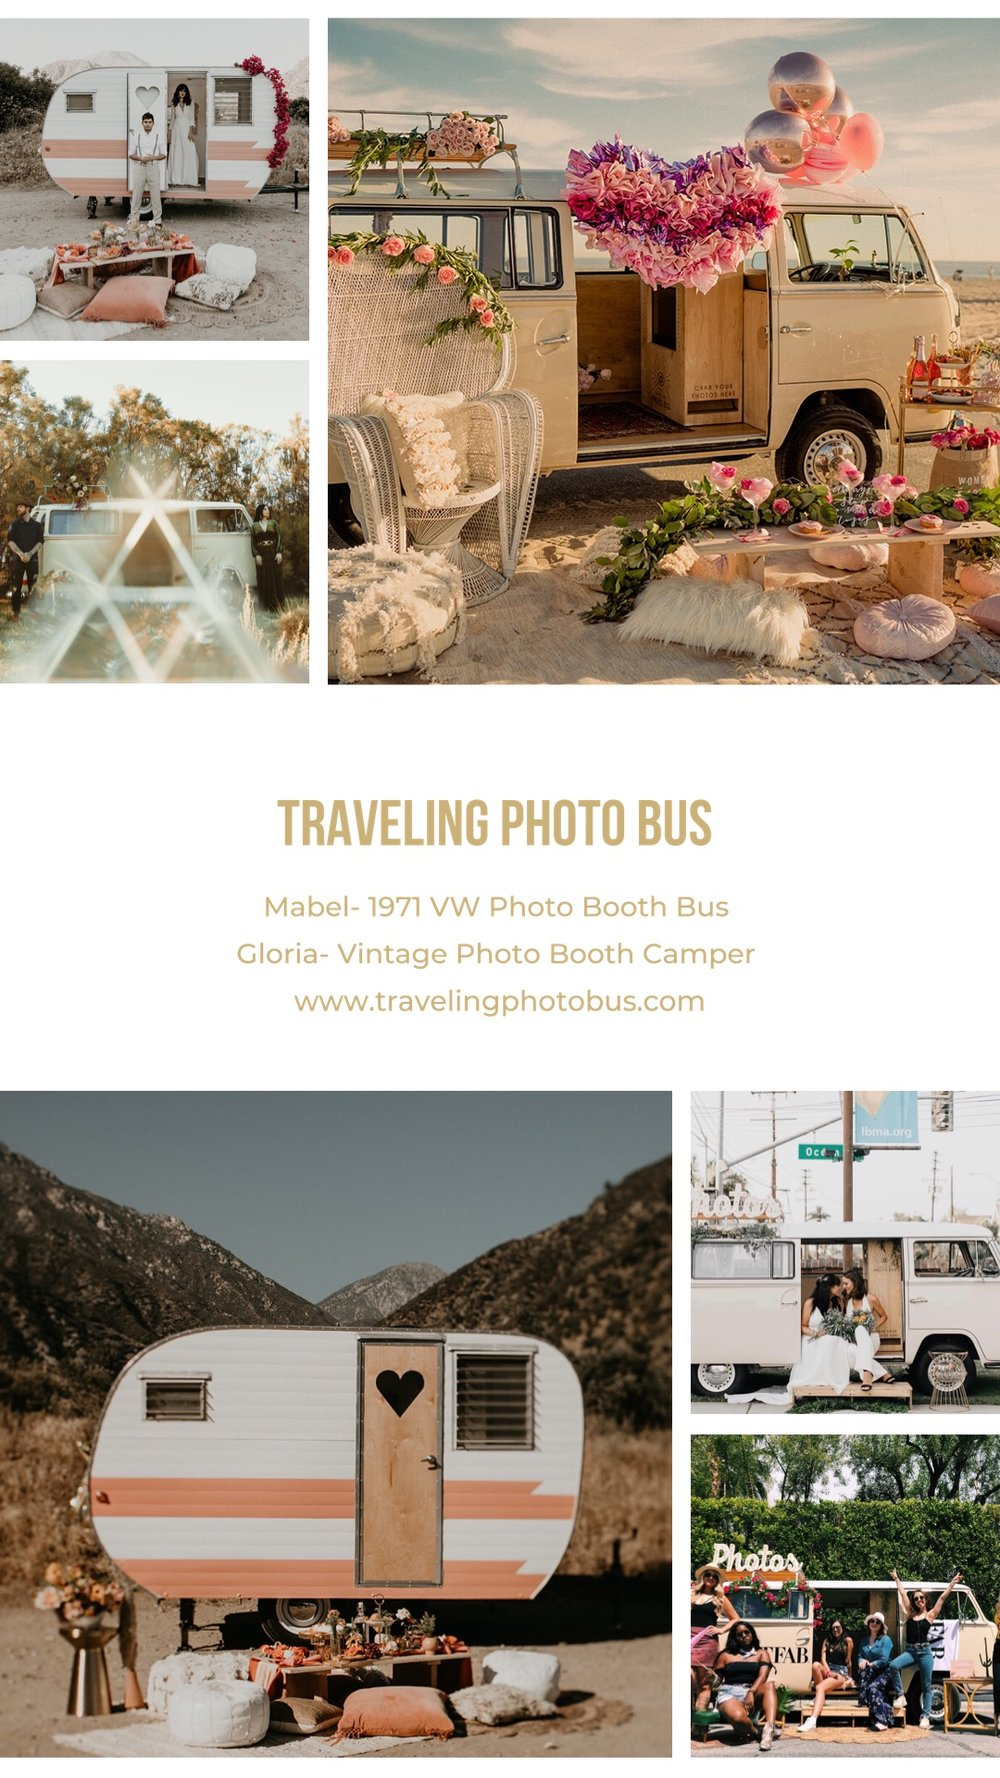 photo booth bus camper.JPG